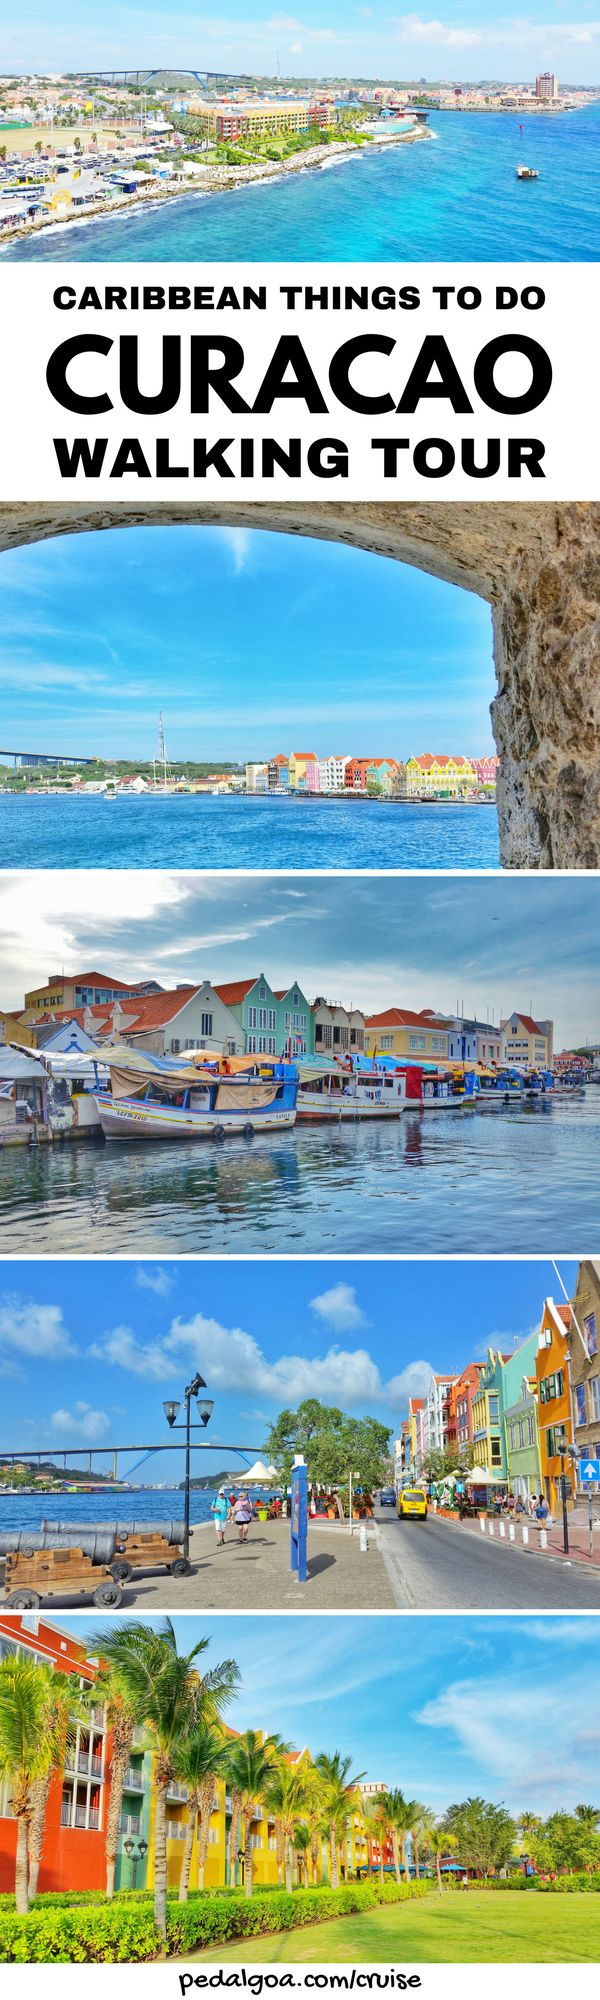 For things to do in Curacao on a Caribbean cruise without excursions, including taking instagram pictures near Curacao cruise port! You'll pass by a shopping mall and fort to get to downtown Willemstad with culture for more shopping and food to eat. Floating bridge, floating market, waterfront cafe. Budget-friendly activities when you're not taking a tour. Cruise tips for your southern Caribbean cruise to Curacao that might include Grand Turk, Aruba, Bonaire, Dominican Republic, or Barbados…